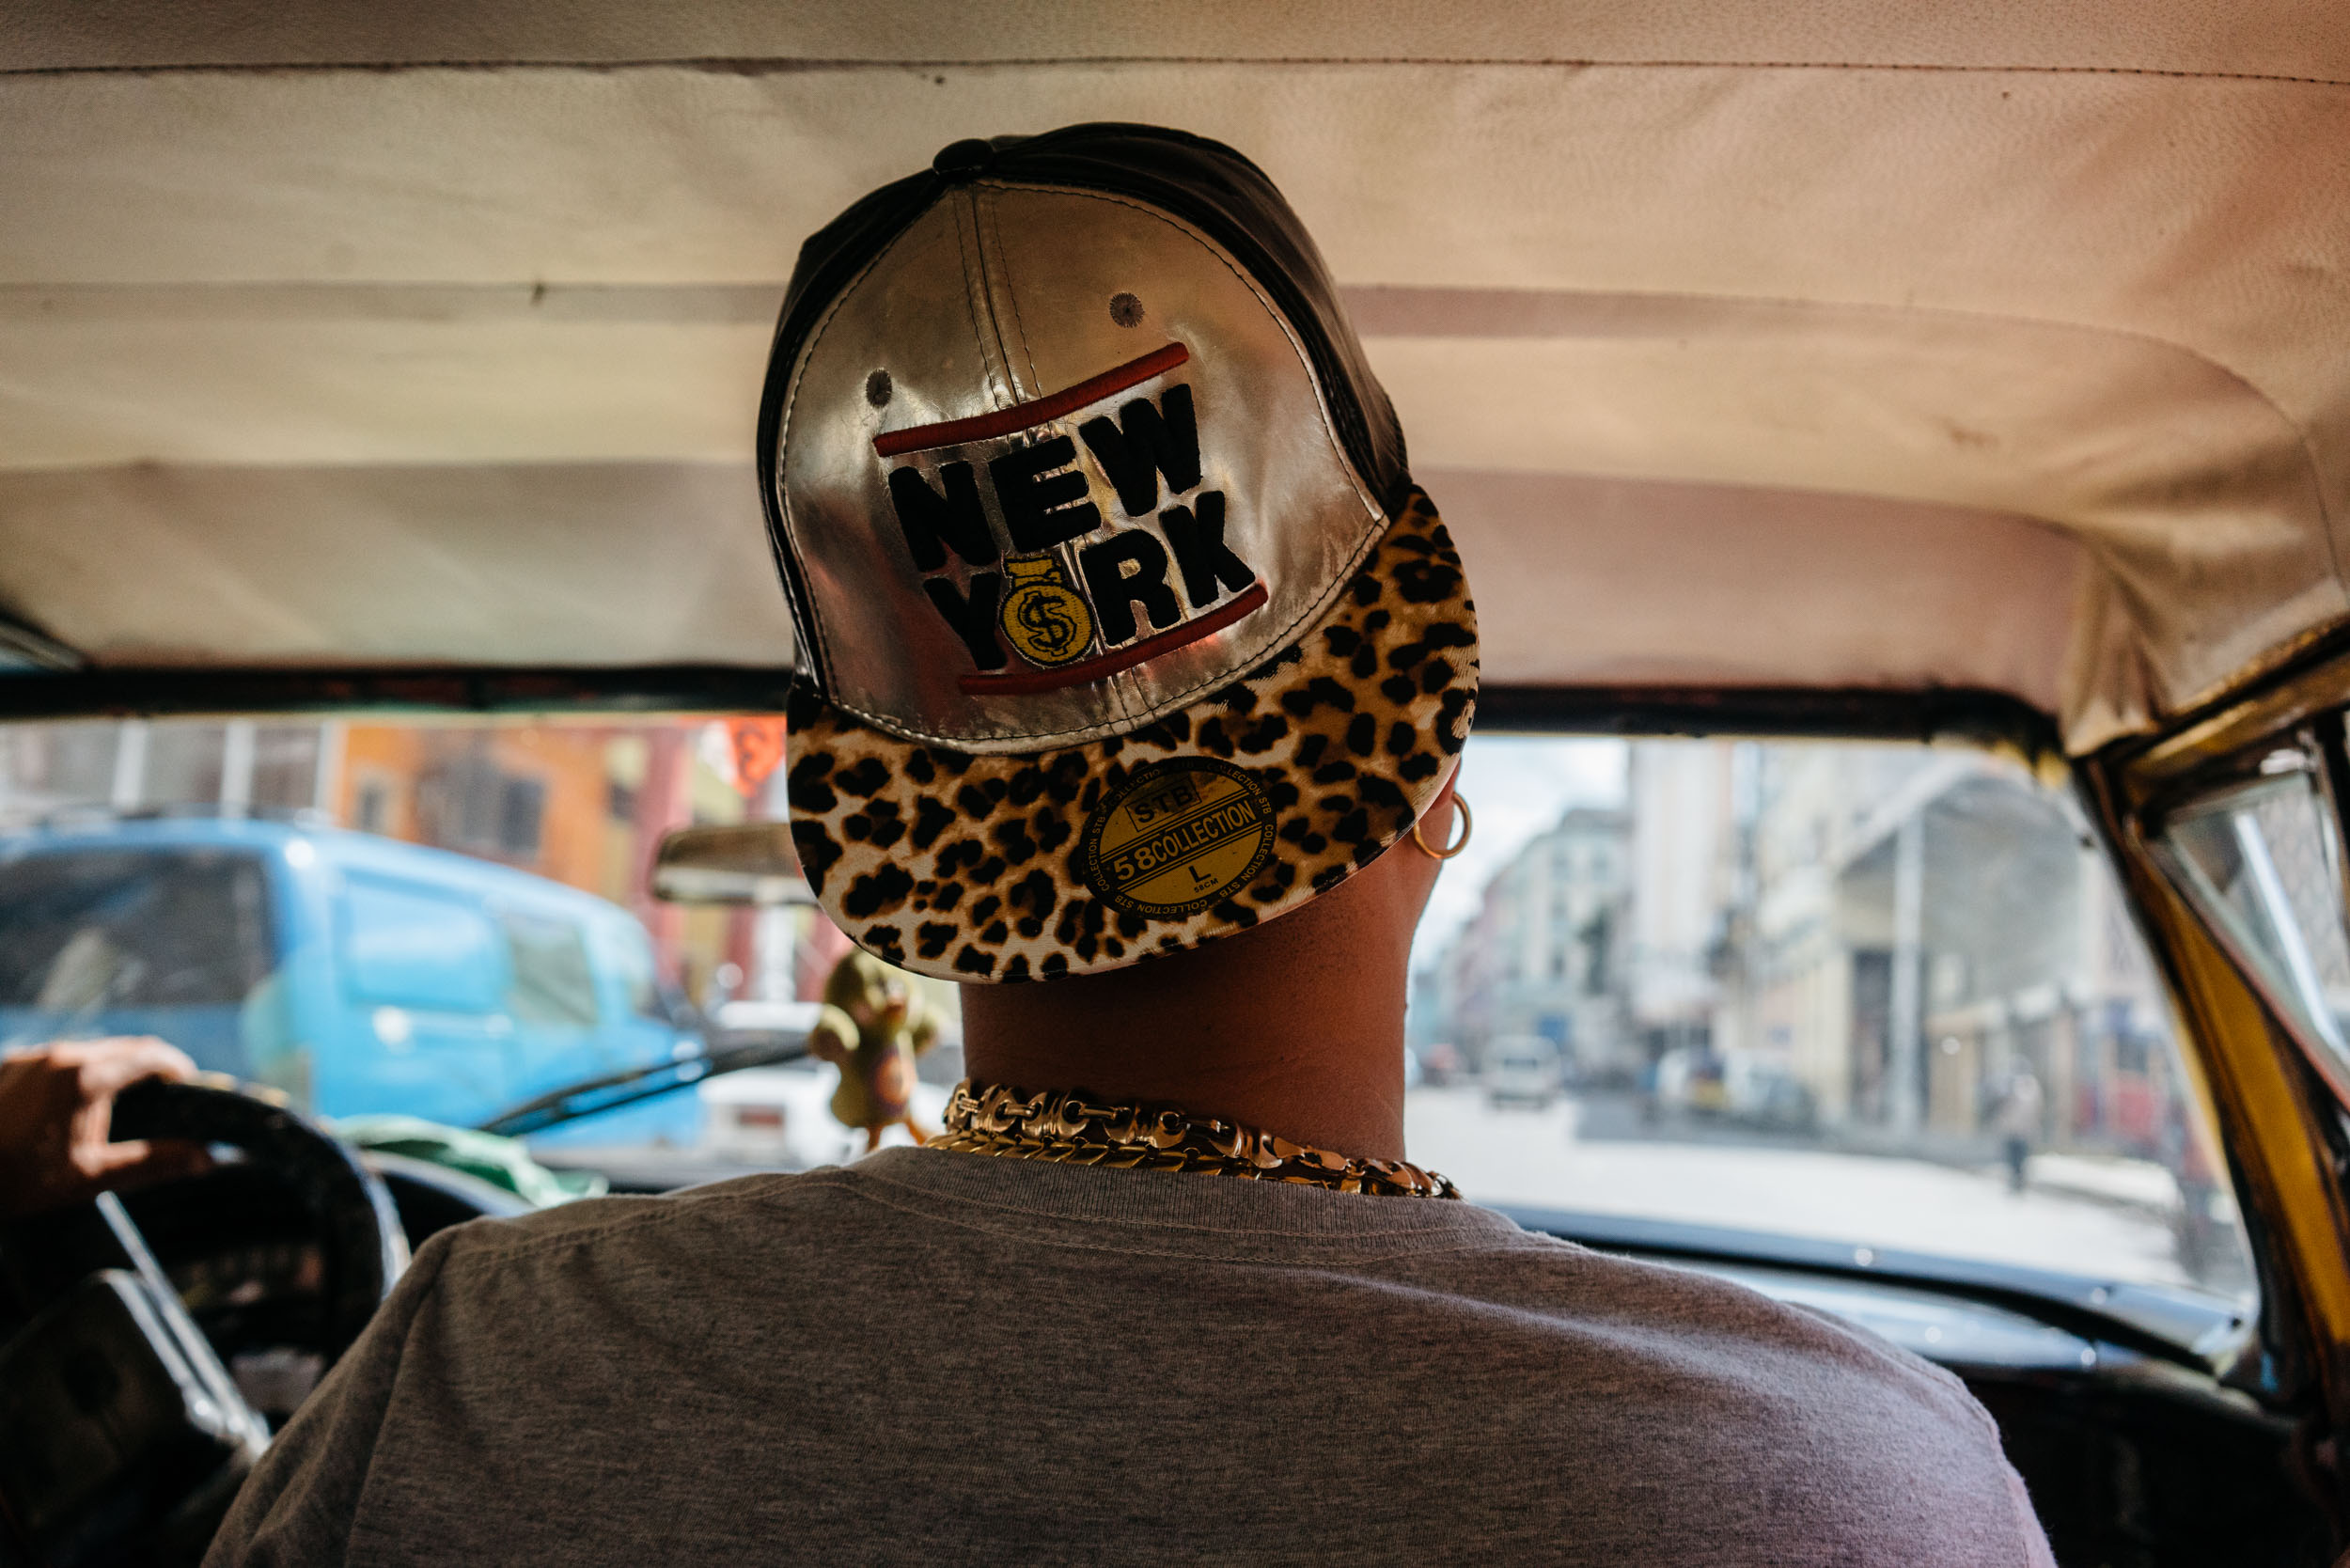 inside taxi havana cuba hat with new york